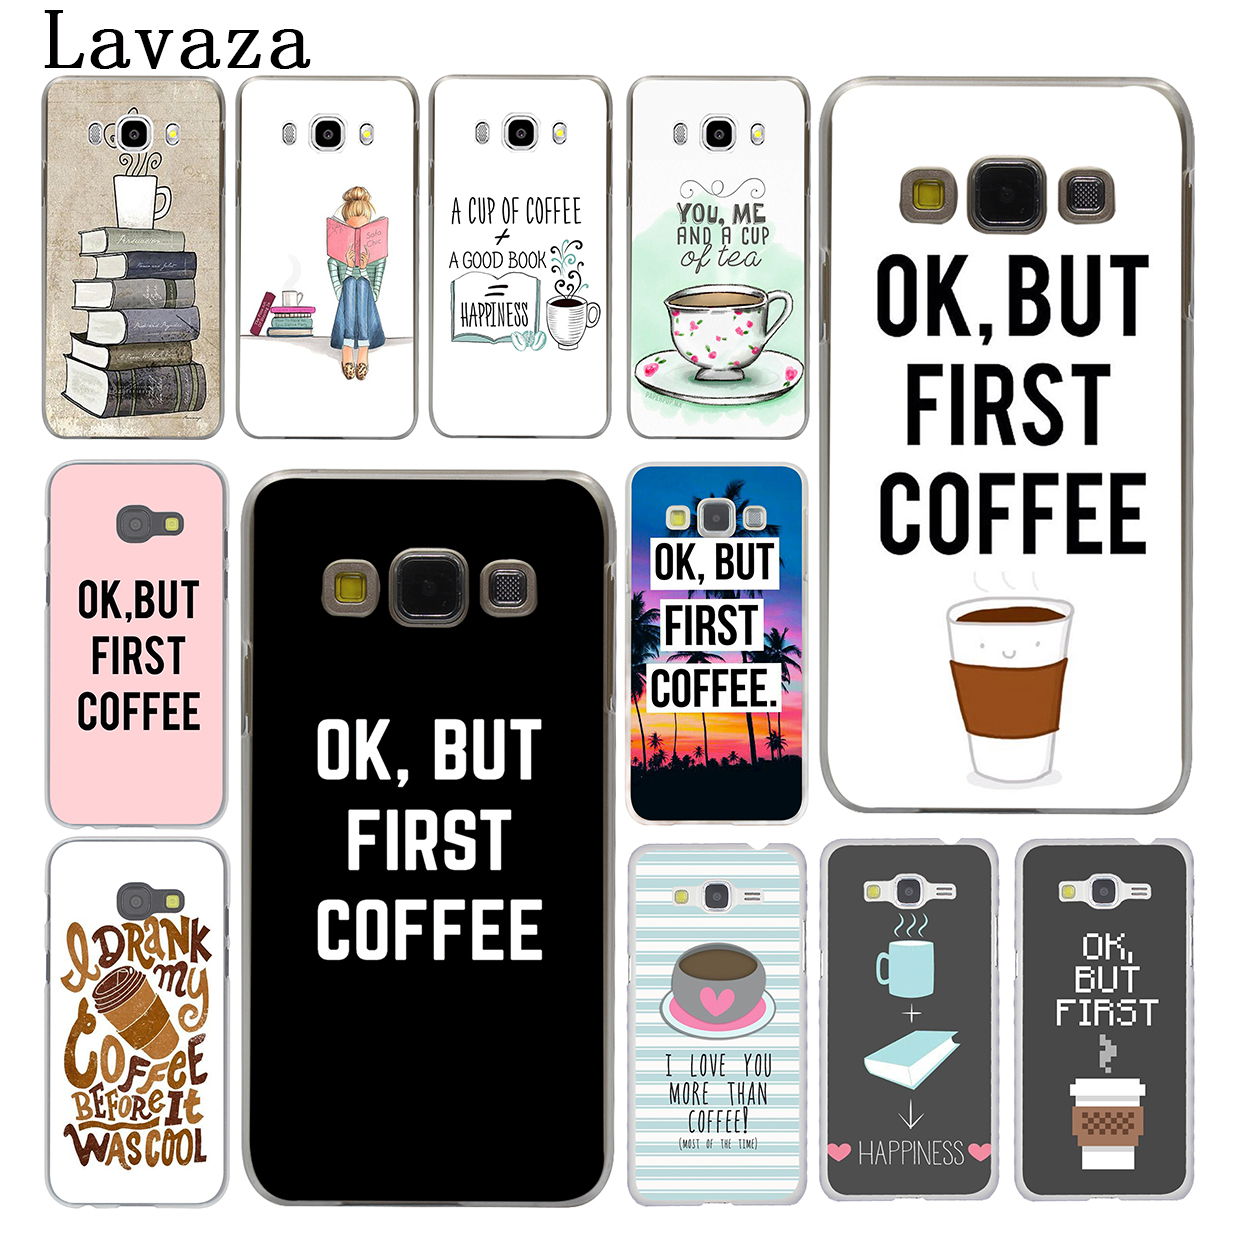 Lavaza Ok But First Coffee book Postcard Hard Case for Samsung Galaxy J7 J1 J2 J3 J5 2015 2016 2017 Prime Pro Ace 2018 Cover